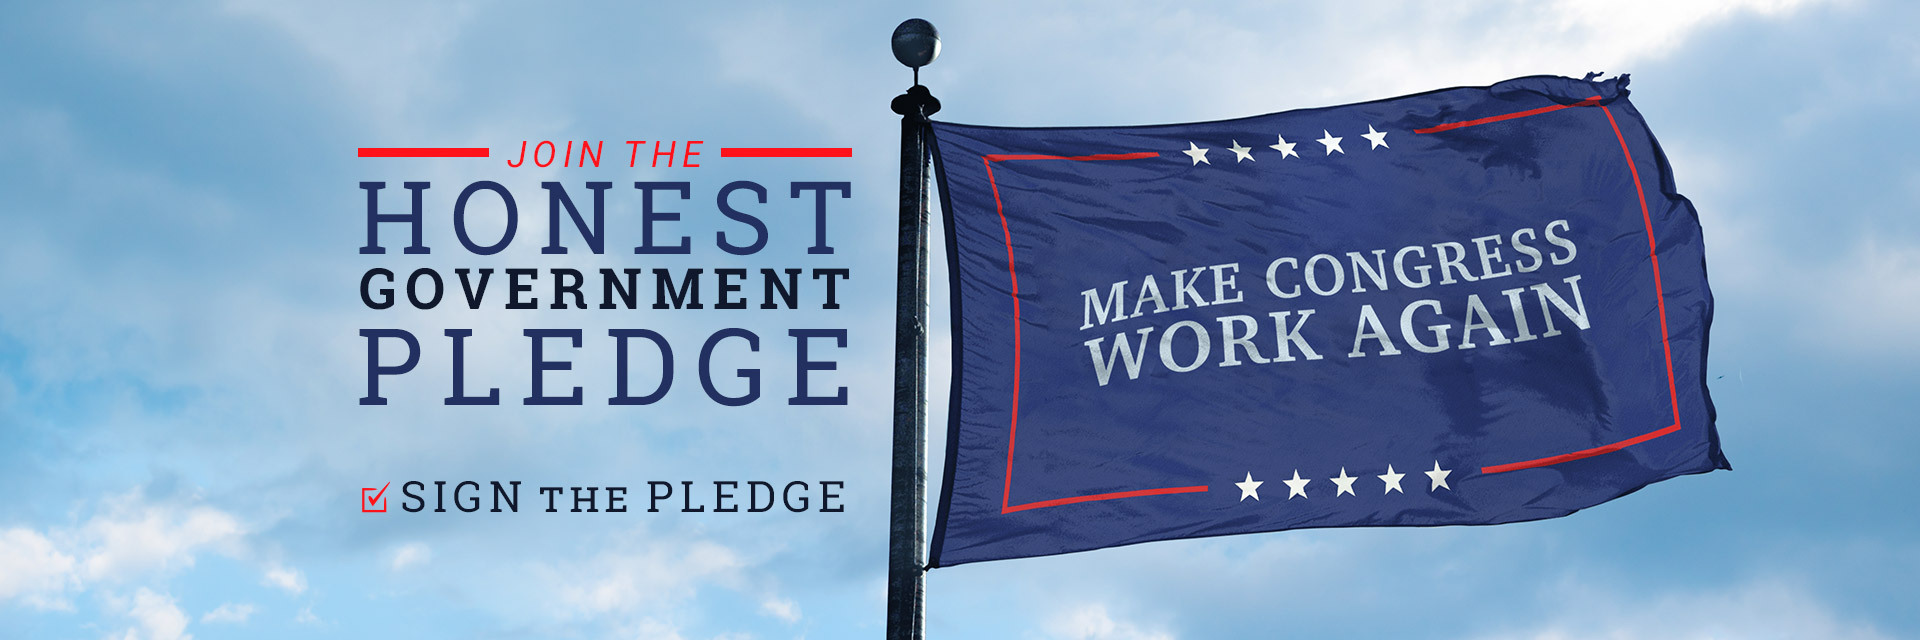 Honest-Government-Pledge-Slider